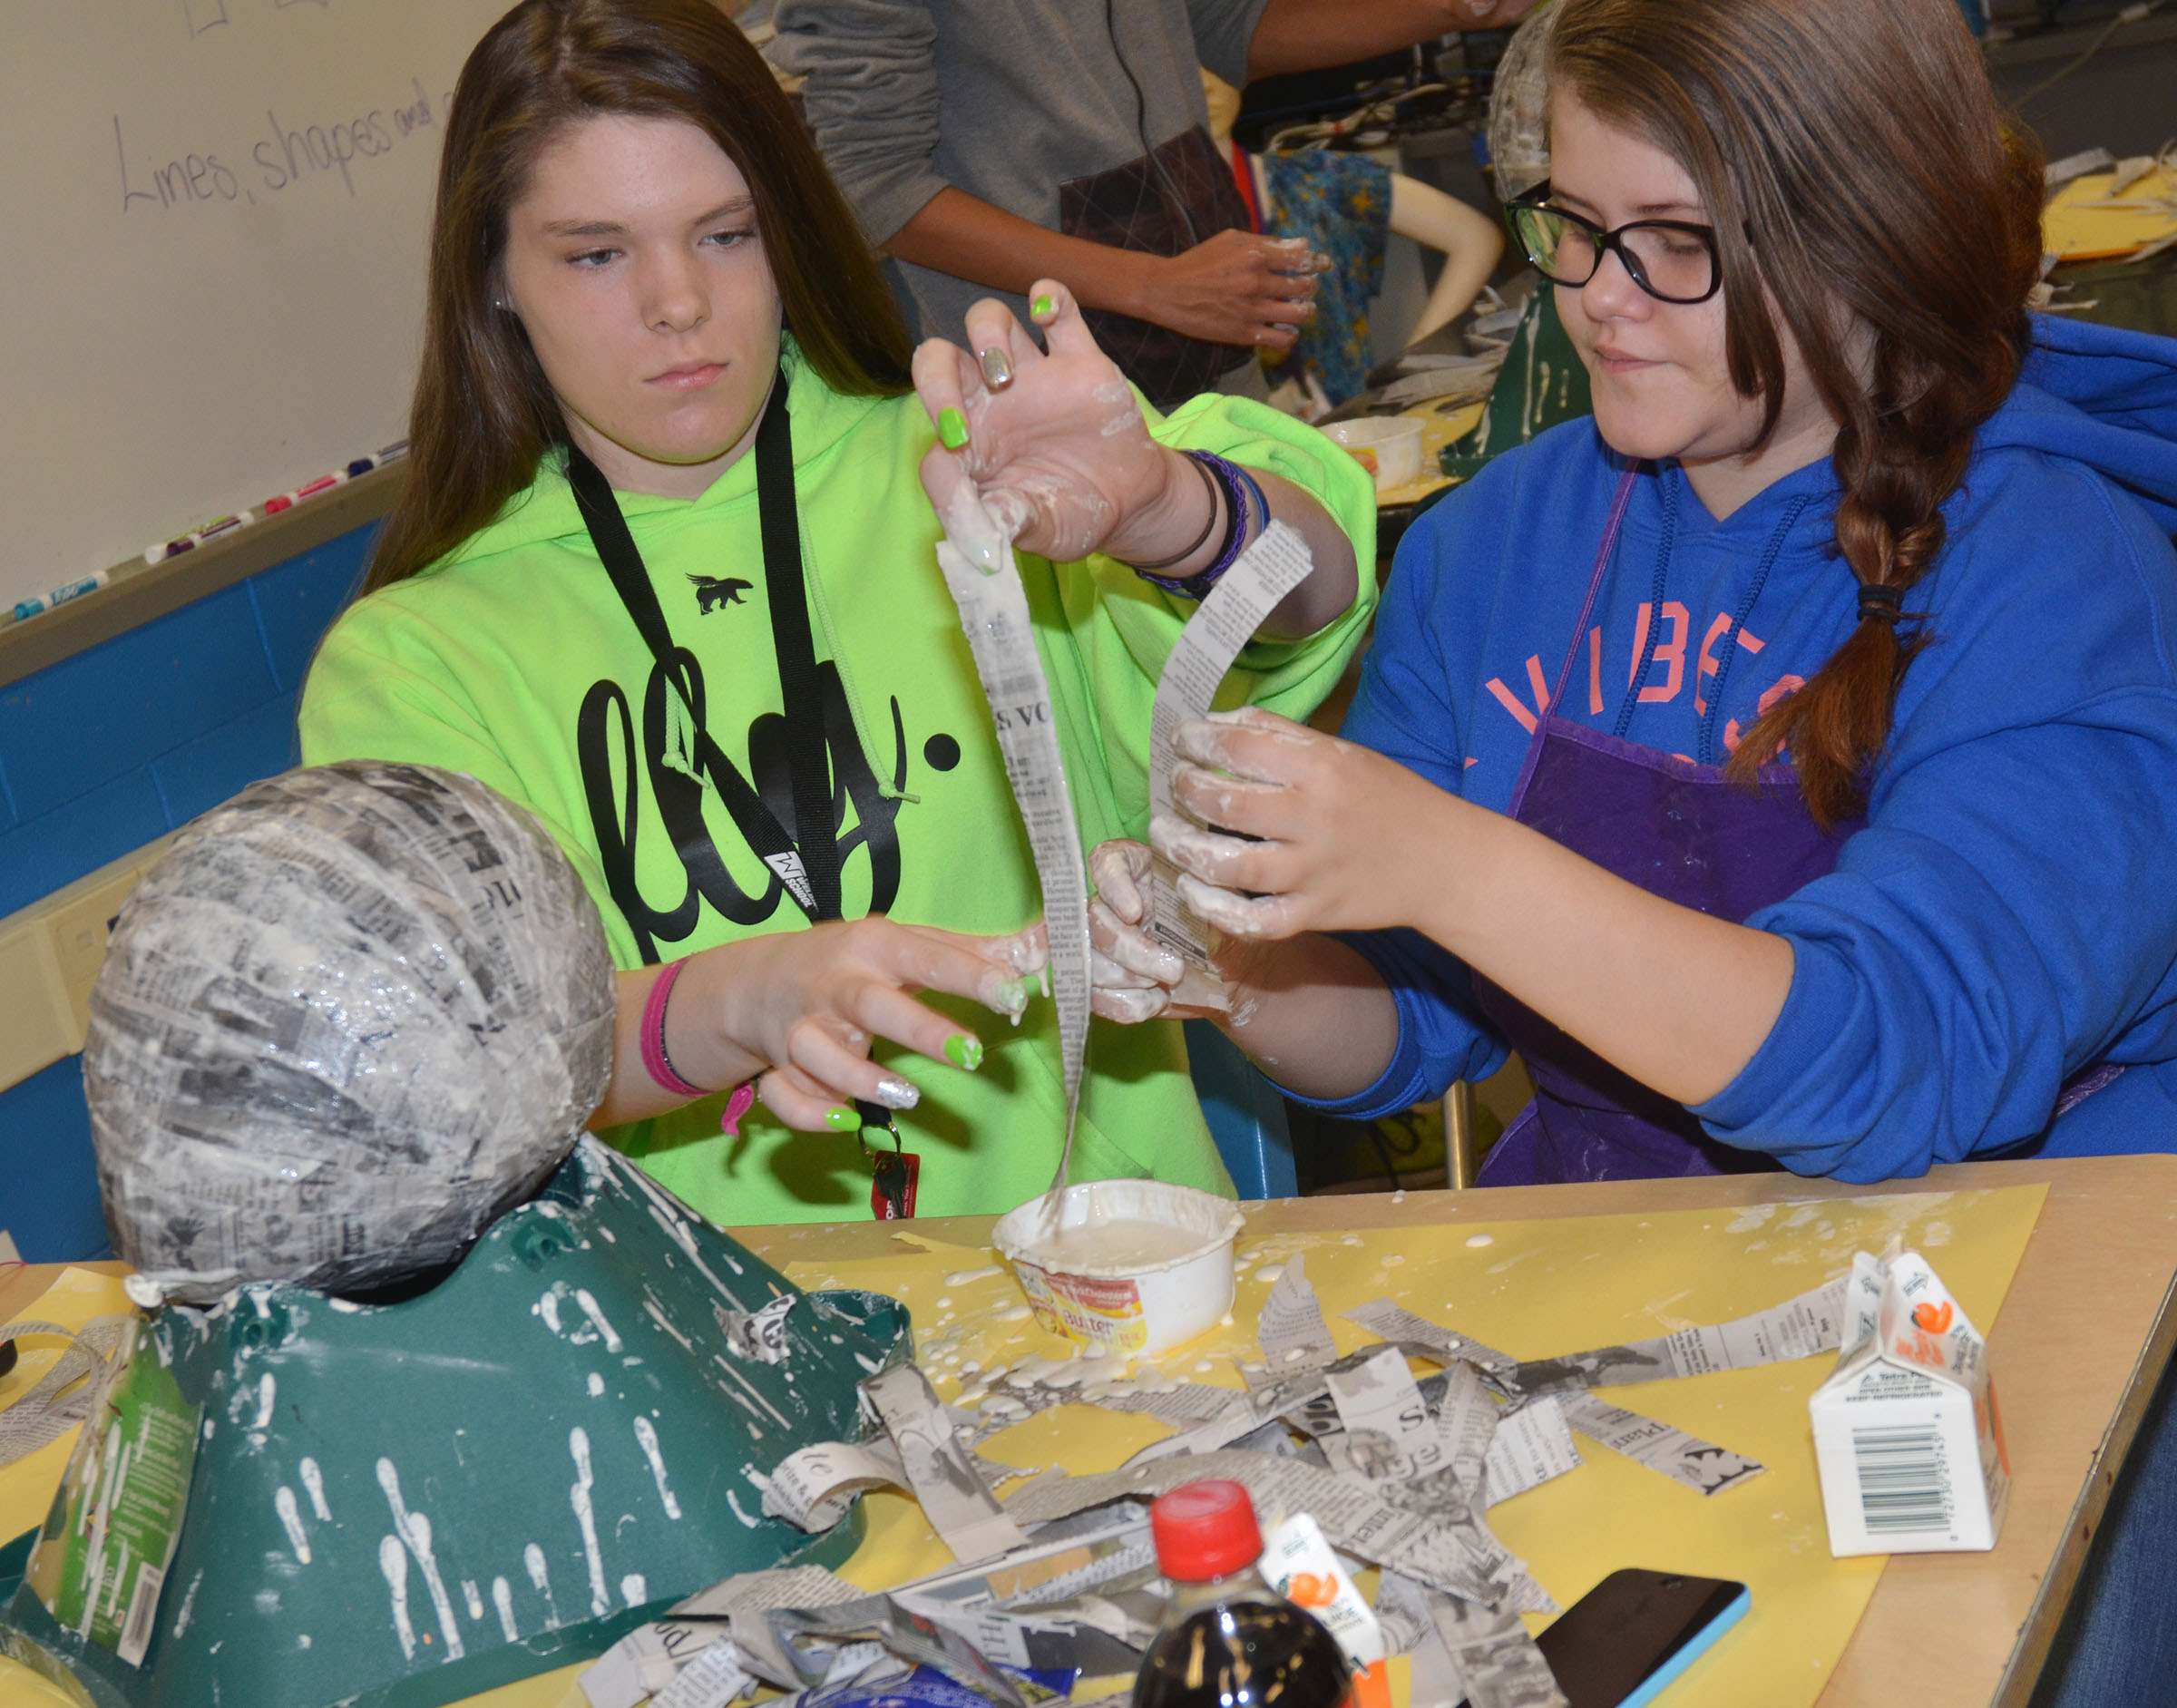 CHS sophomores Cassie Pipes, at left, and Caylee Shofner dip their newspaper strips into the paper mache mixture.